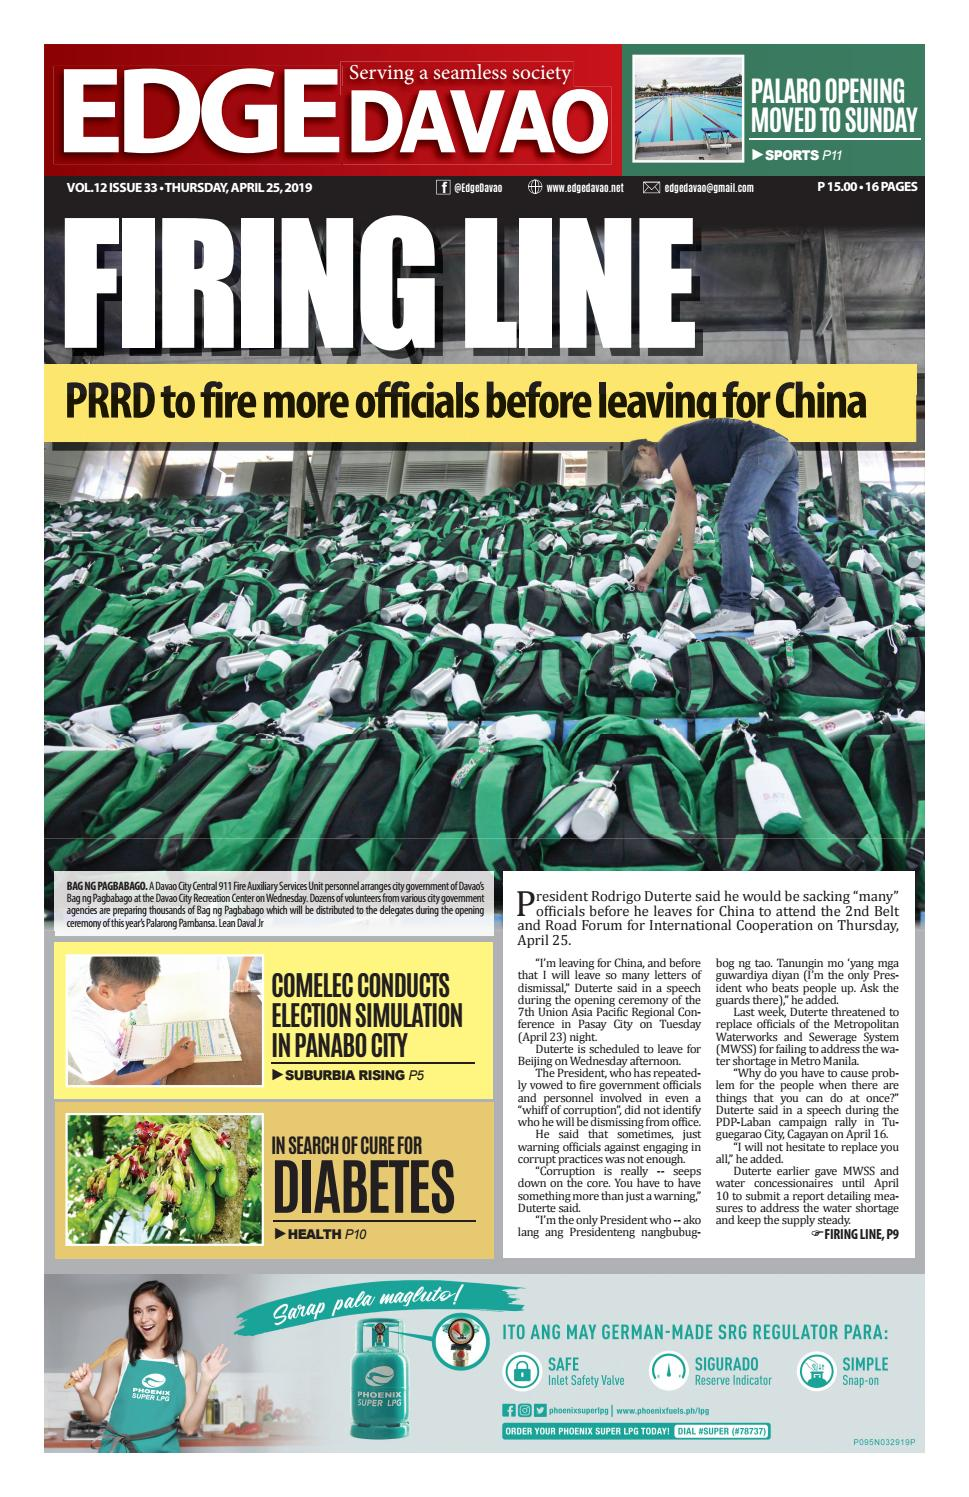 Edge Davao Volume 12 Issue 33 | Thursday, April 25, 2019 by